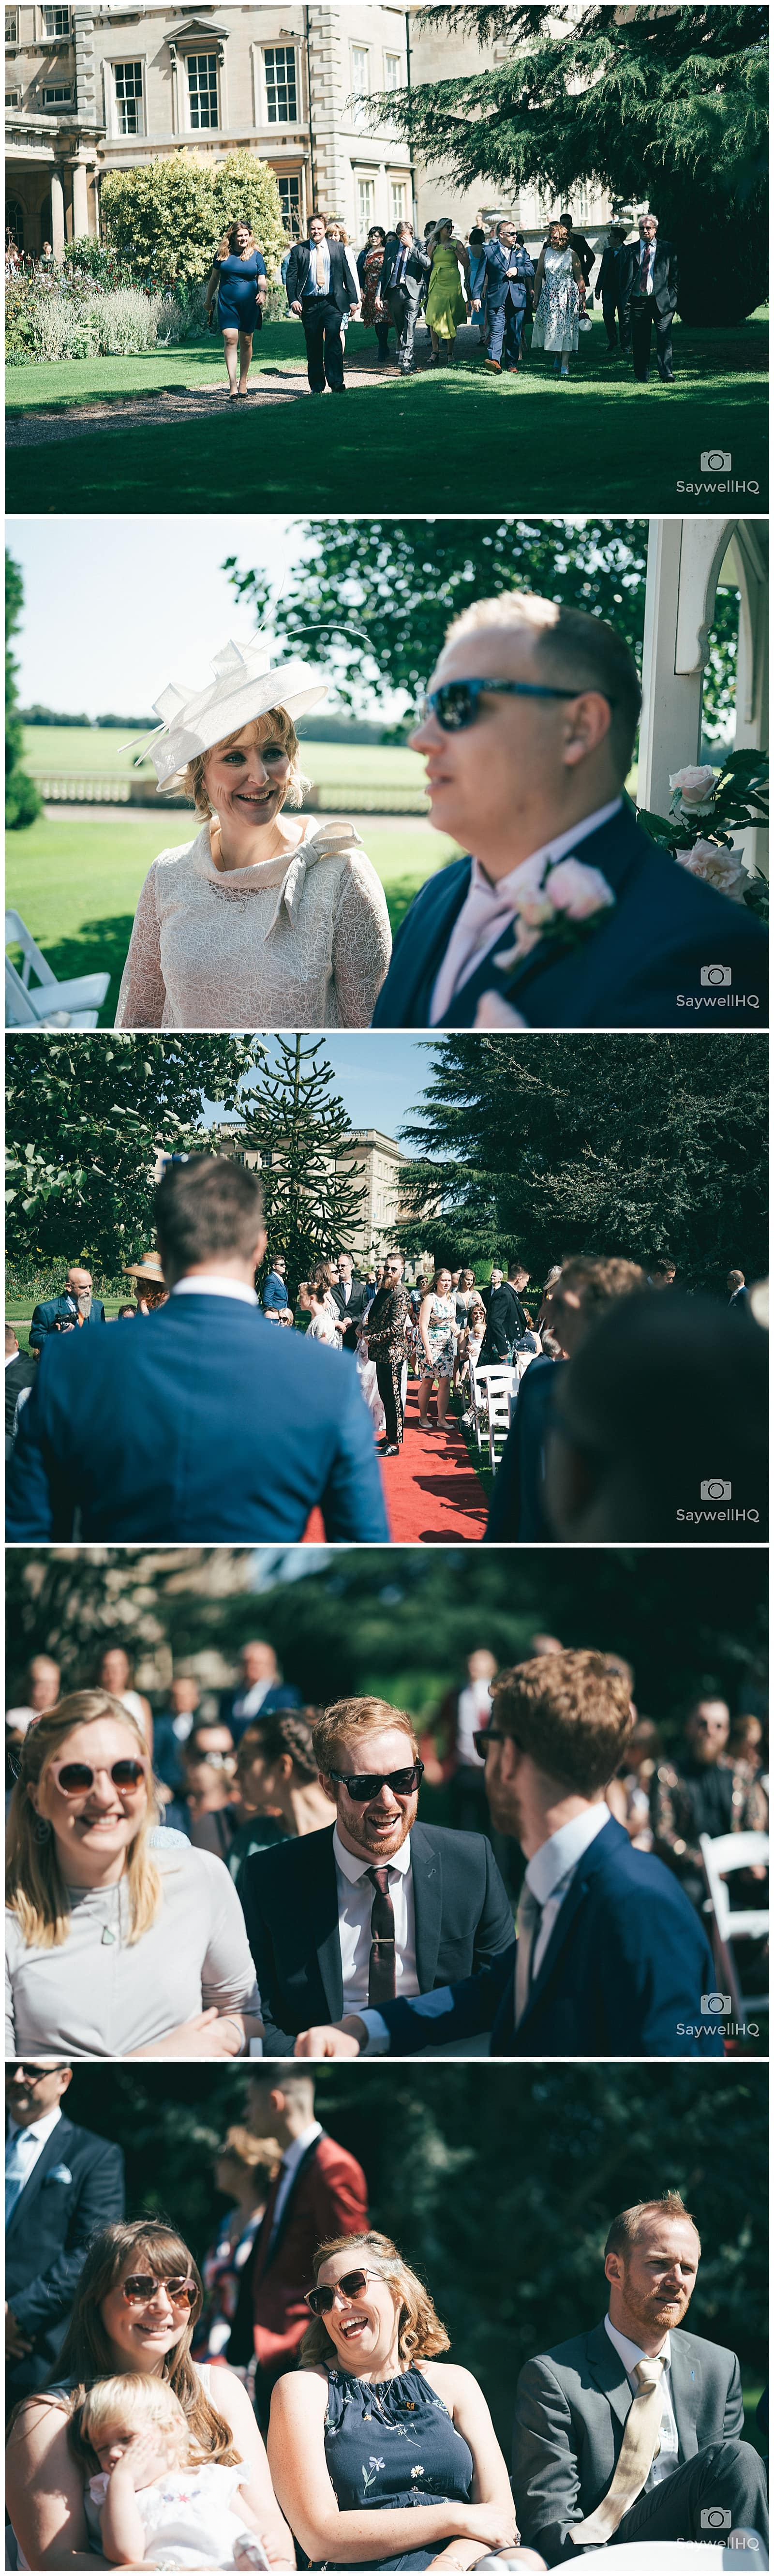 Wedding Photography at Prestwold Hall – bride and her dad walking down th aisle at prestwold hall wedding